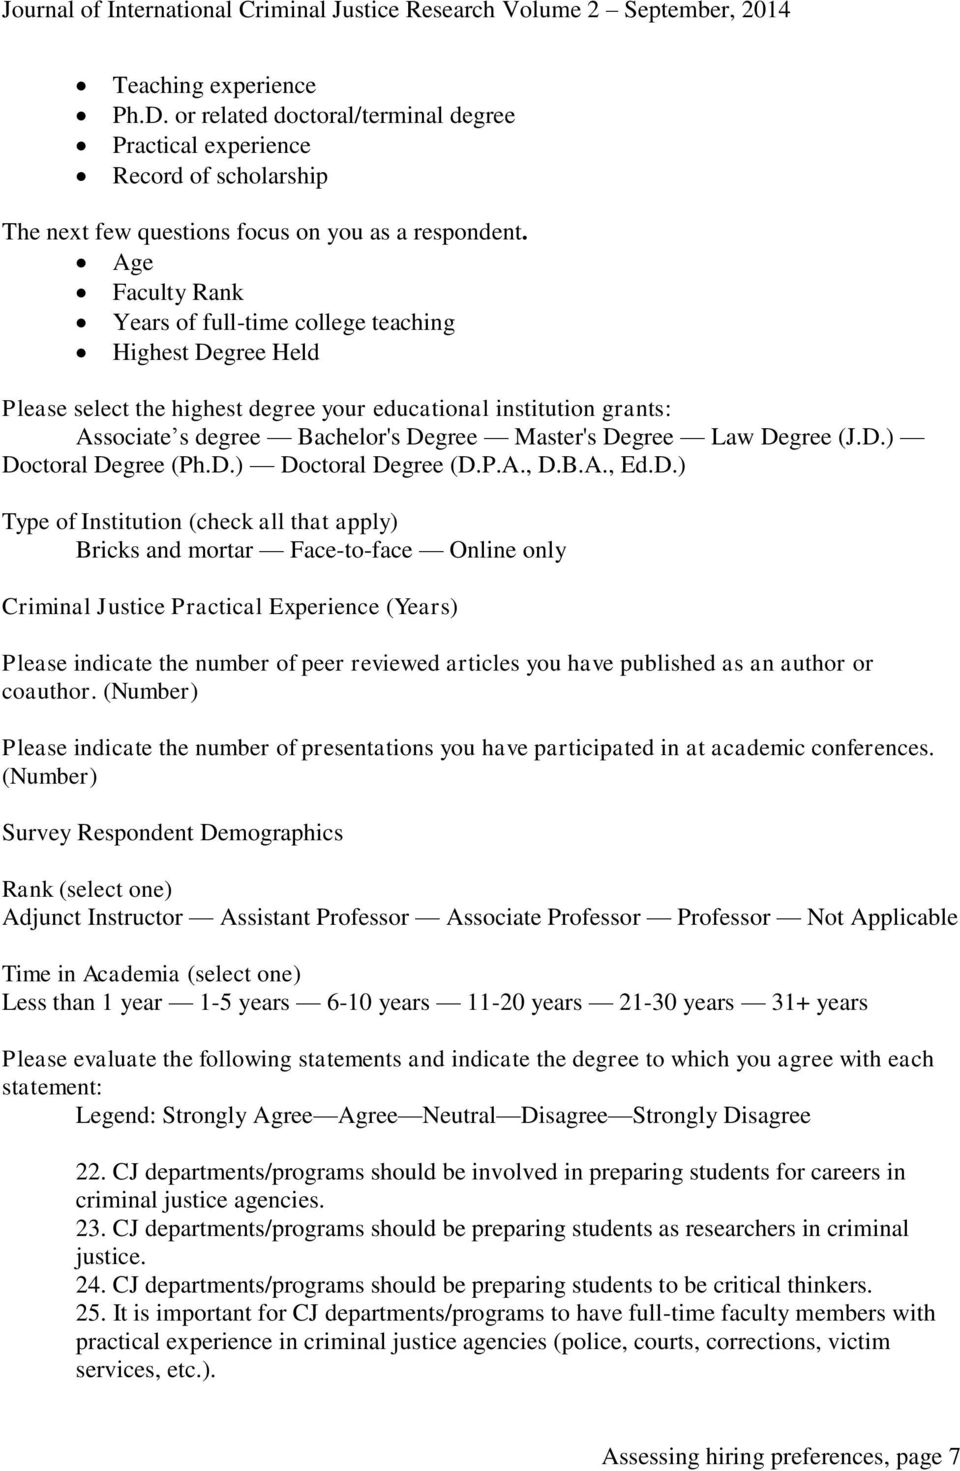 Degree (J.D.) Doctoral Degree (Ph.D.) Doctoral Degree (D.P.A., D.B.A., Ed.D.) Type of Institution (check all that apply) Bricks and mortar Face-to-face Online only Criminal Justice Practical